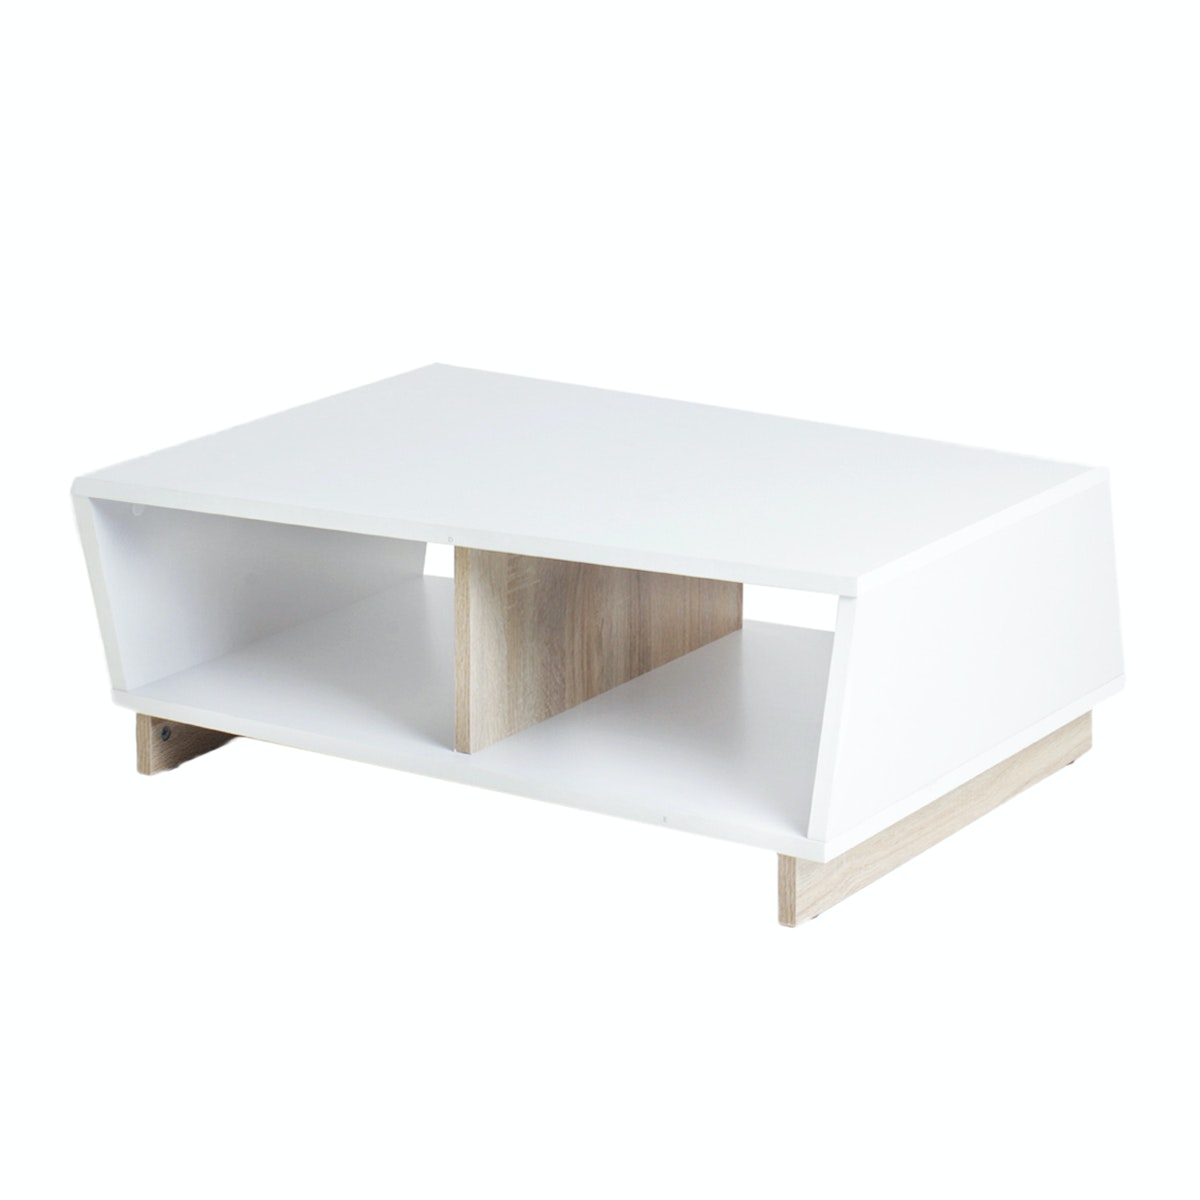 Funika Regina Coffee Table – White and Sonoma OAK